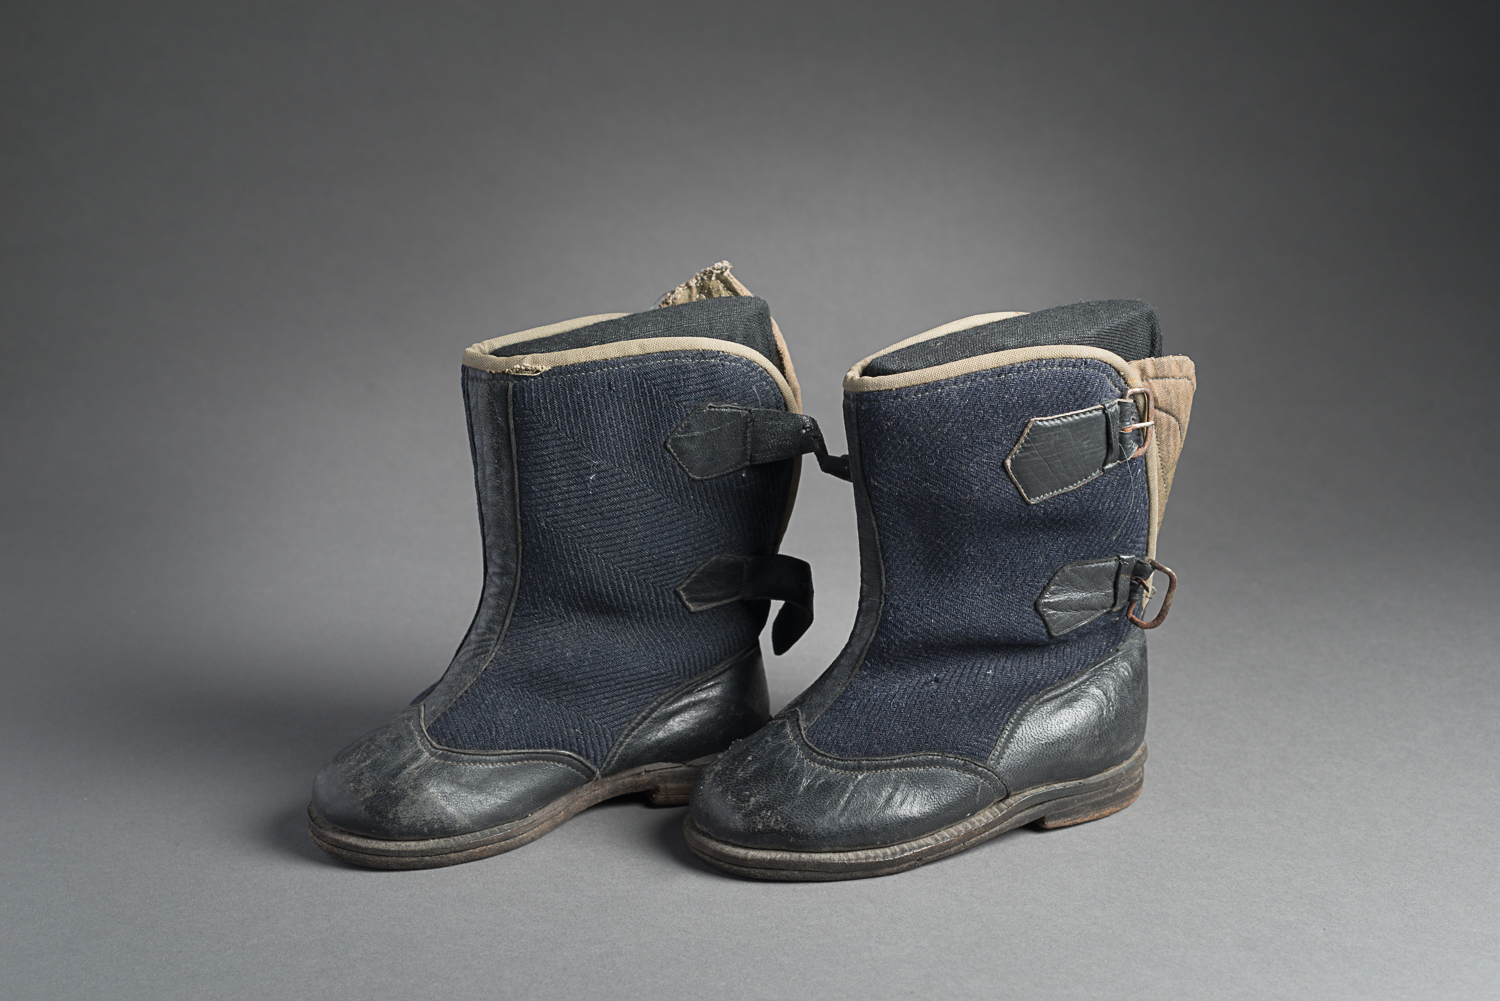 These baby boots were made for Max Beer when he was a child. (Photo: Peter Berra)